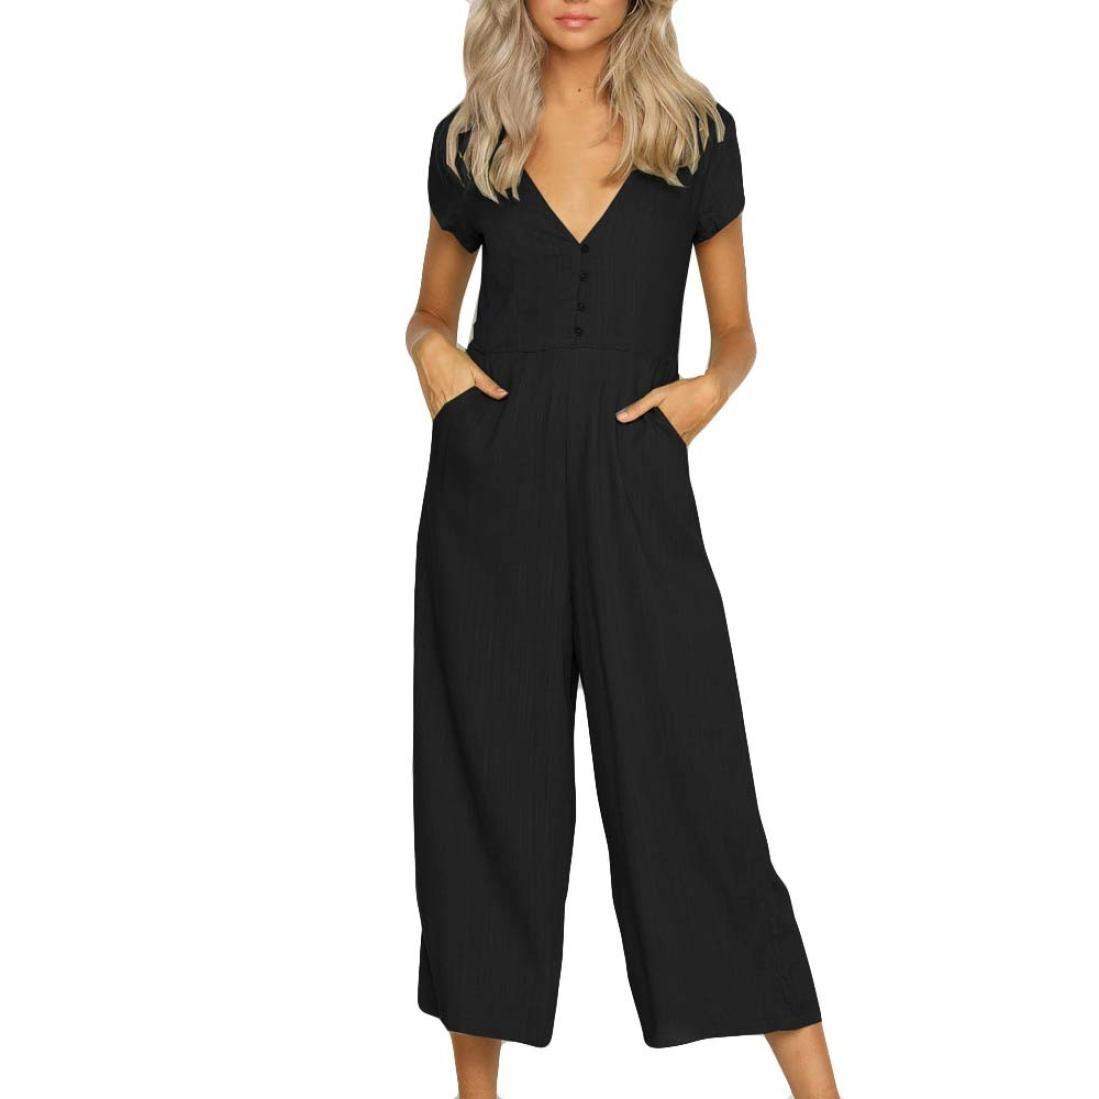 c69f960be84  Material  Cotton- Womens V-Neck Short Sleeve Strappy Holiday Long  Playsuits Trouser Jumpsuit short sleeve jumpsuit short sleeve jumpsuit  floral short ...